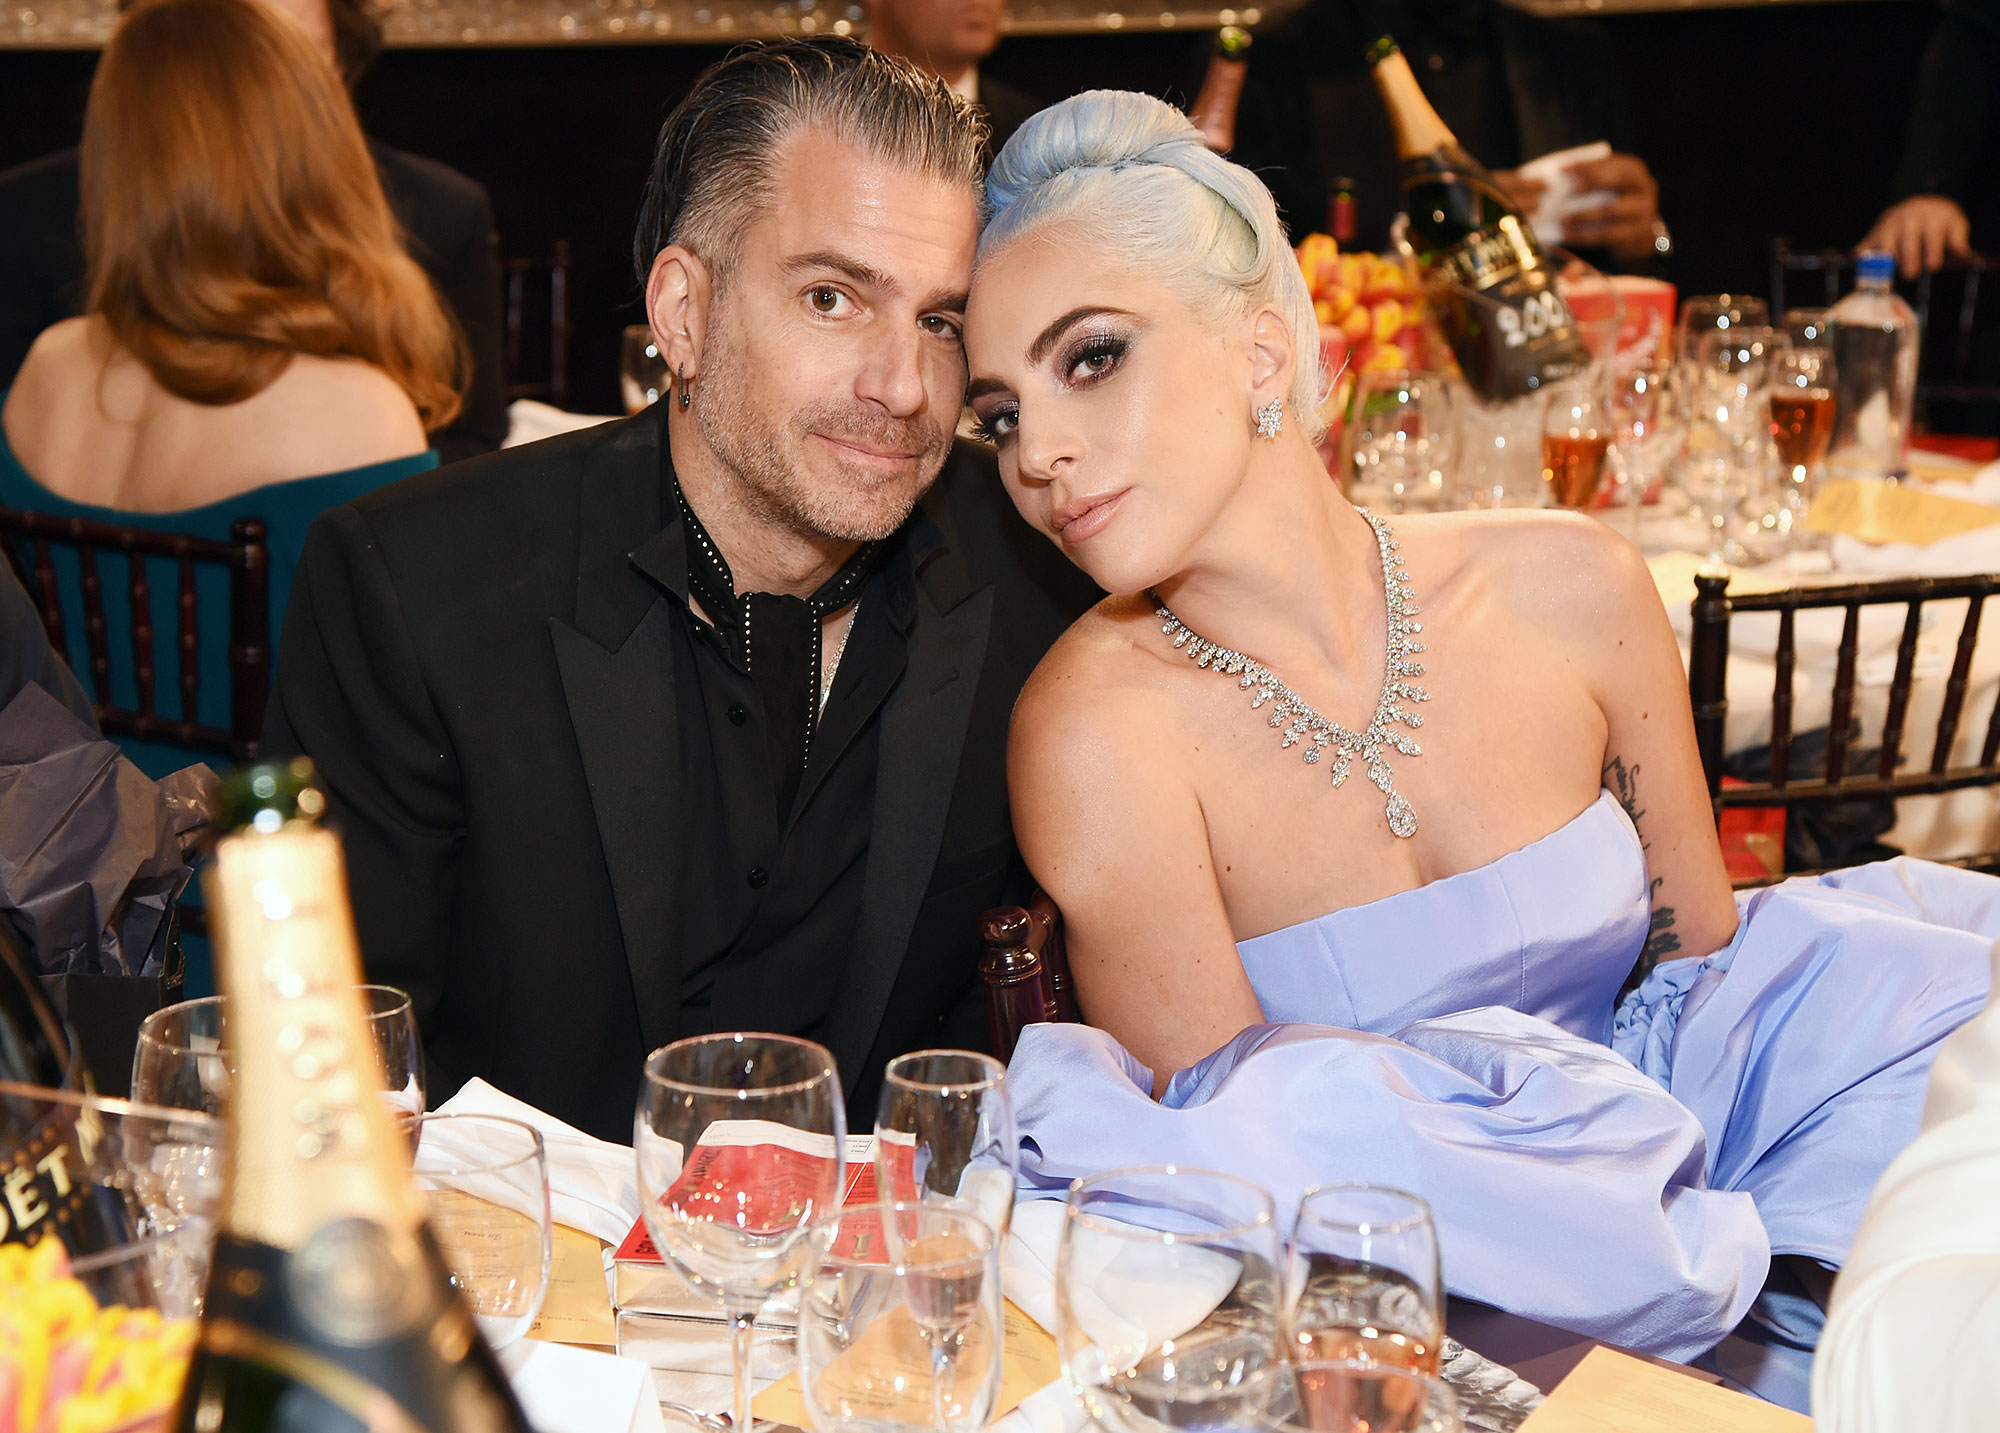 Inside Golden Globes 2019 Christian Carino Lady Gaga - Lady Gaga cozied up to her fiancé, Christian Carino , at their table in the audience.